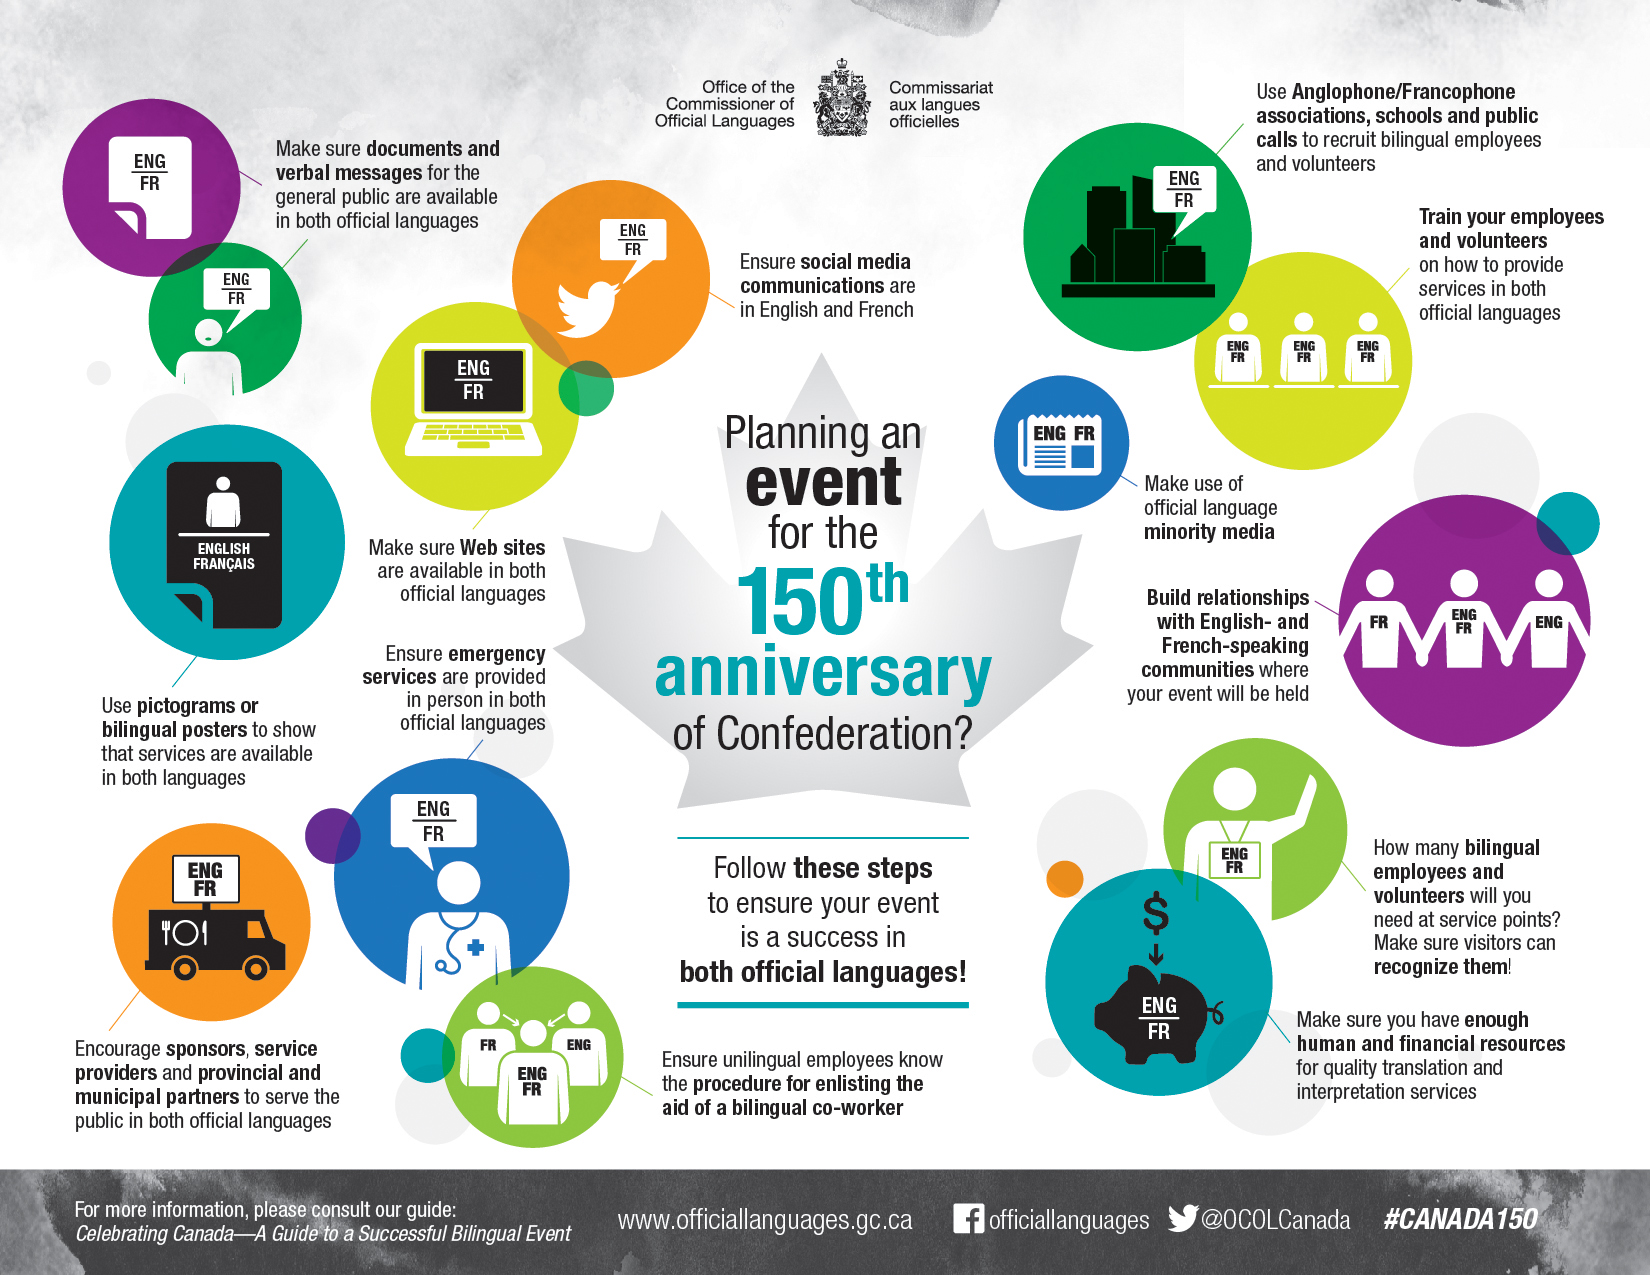 Planning an event for the 150th anniversary of Confederation? Details in text following the infographic.